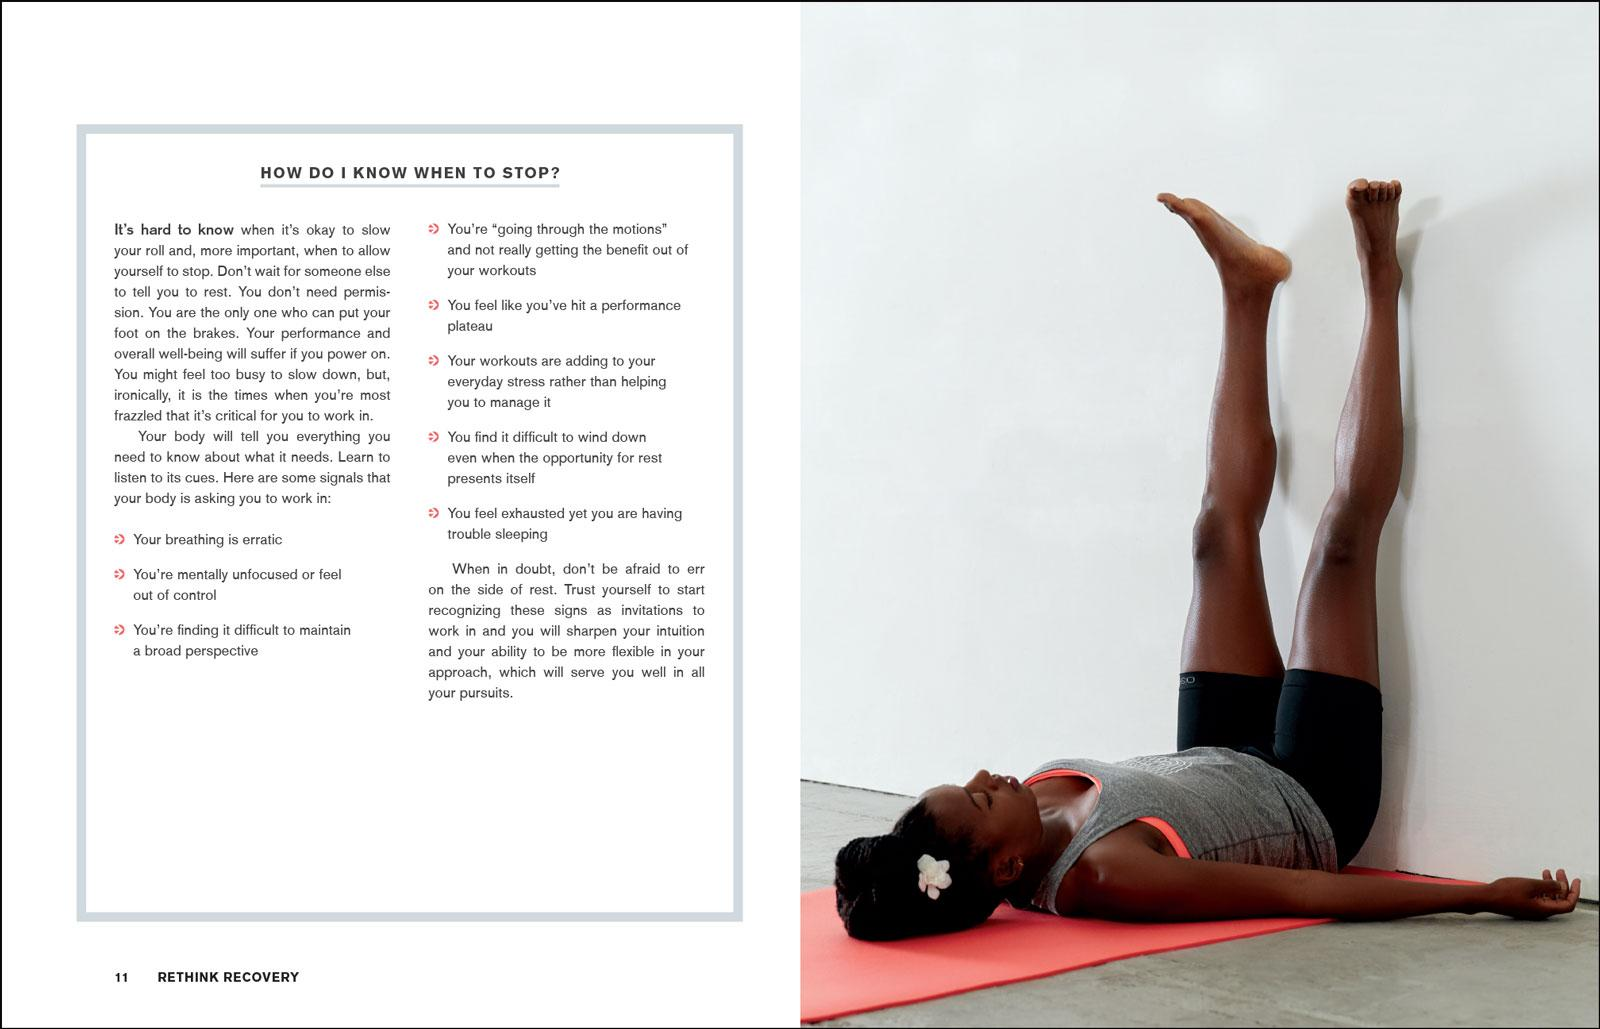 Amazon.com: Work In: The Athletes Plan for Real Recovery ...